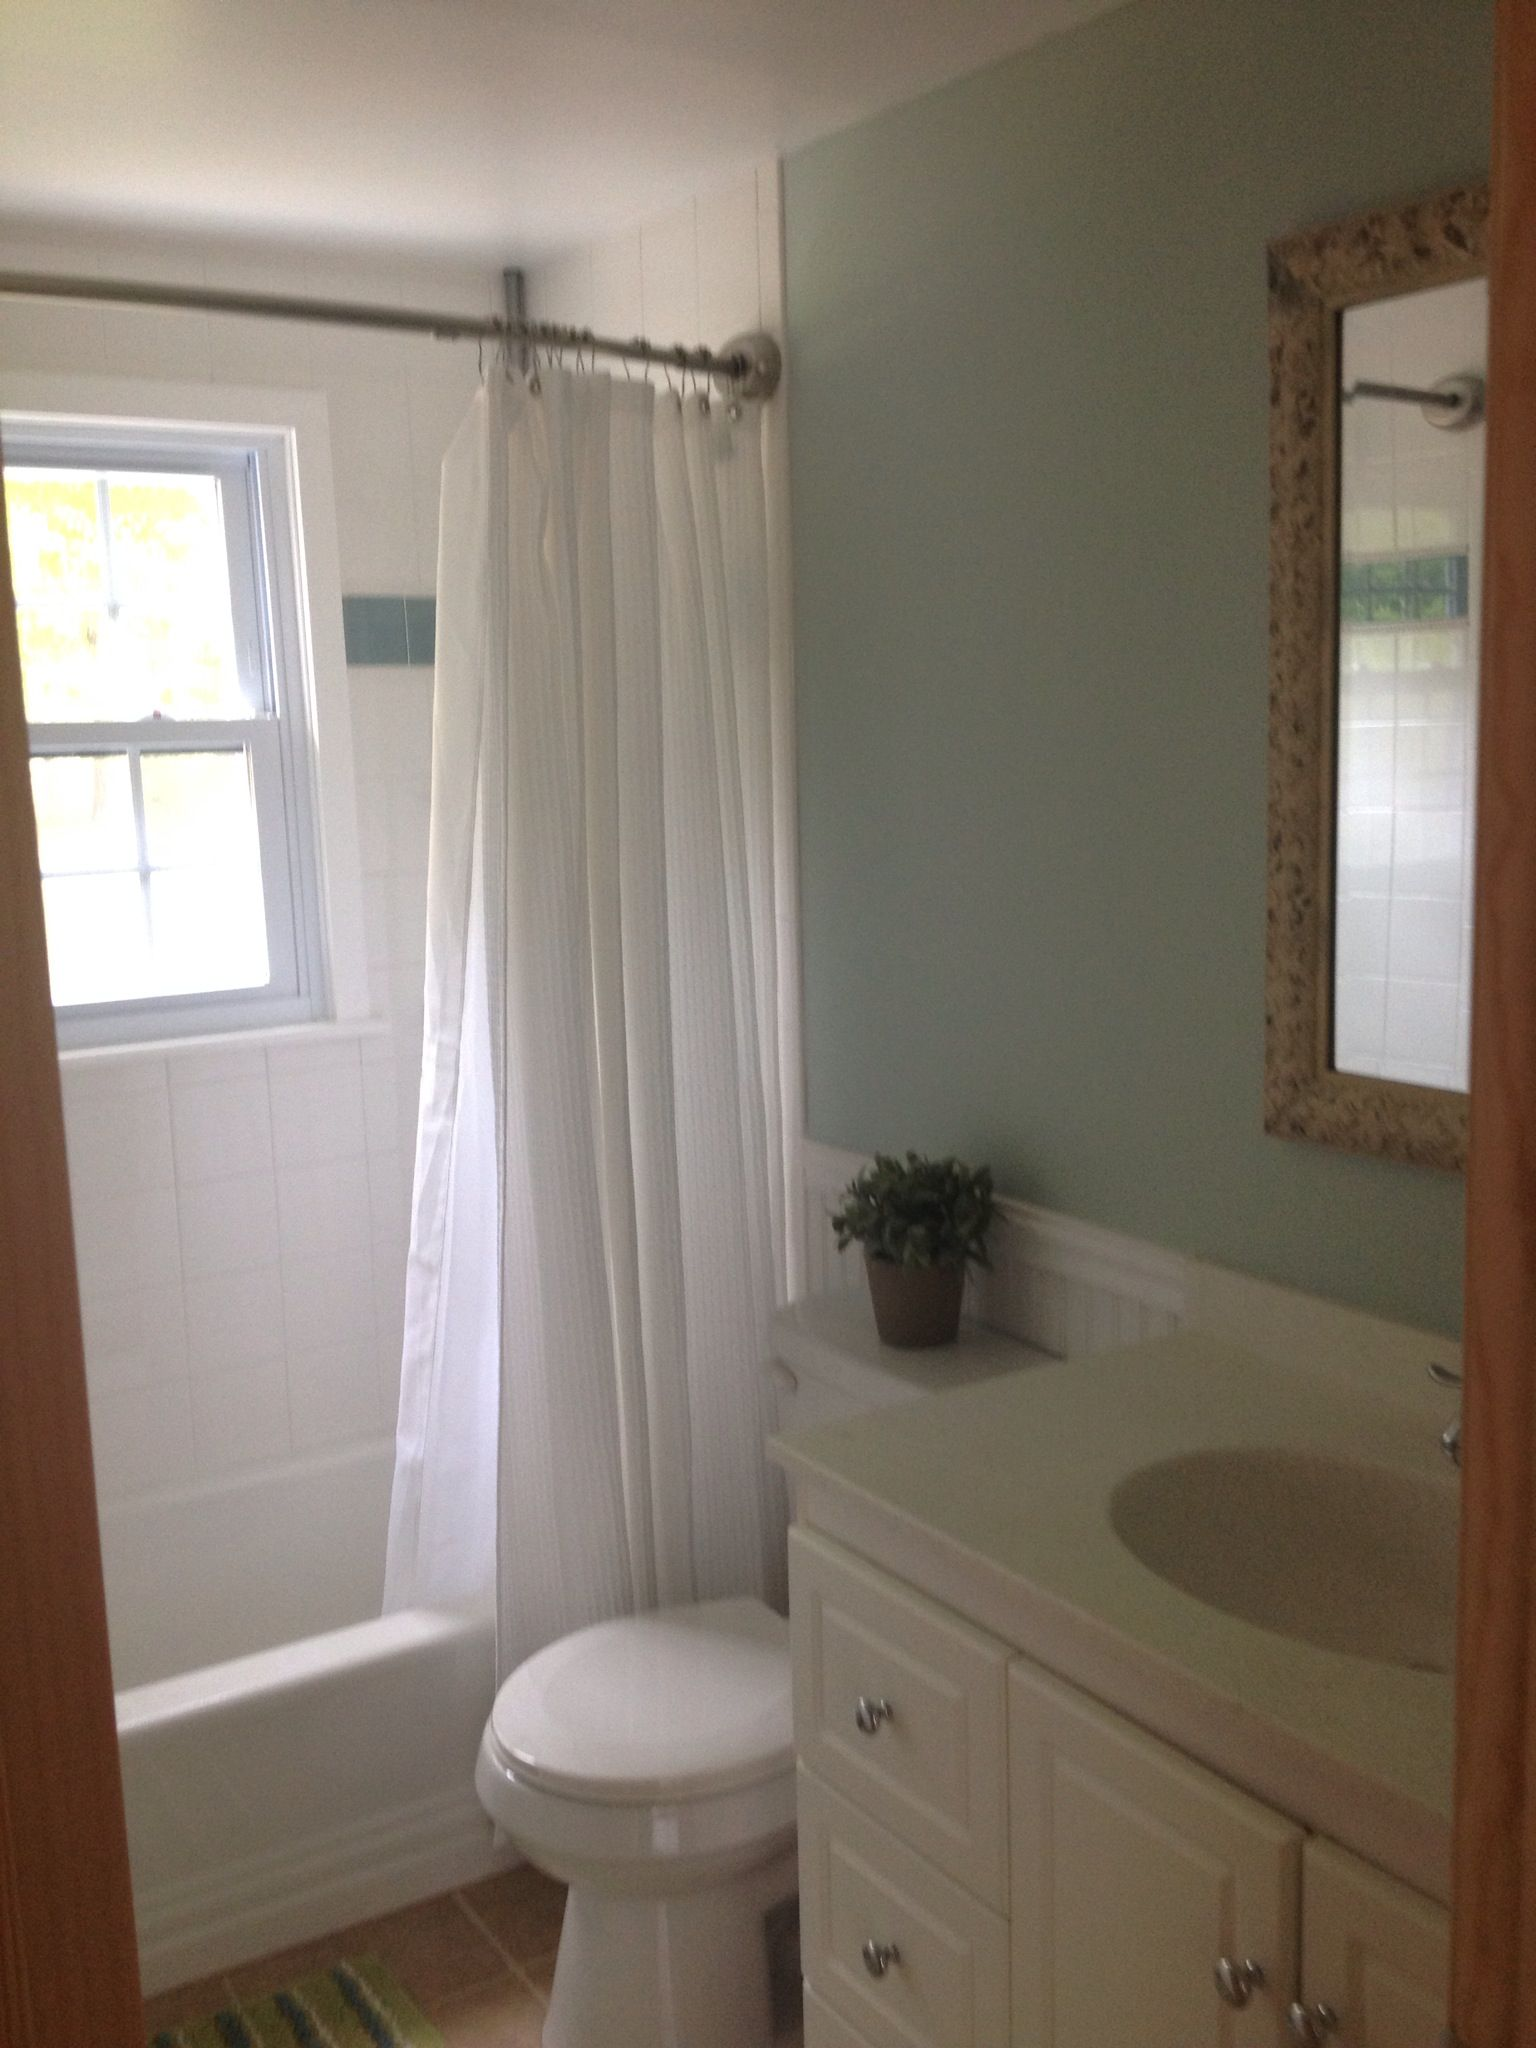 Beach cottage bathroom | Home Decor/ Remodel Ideas | Diy ...